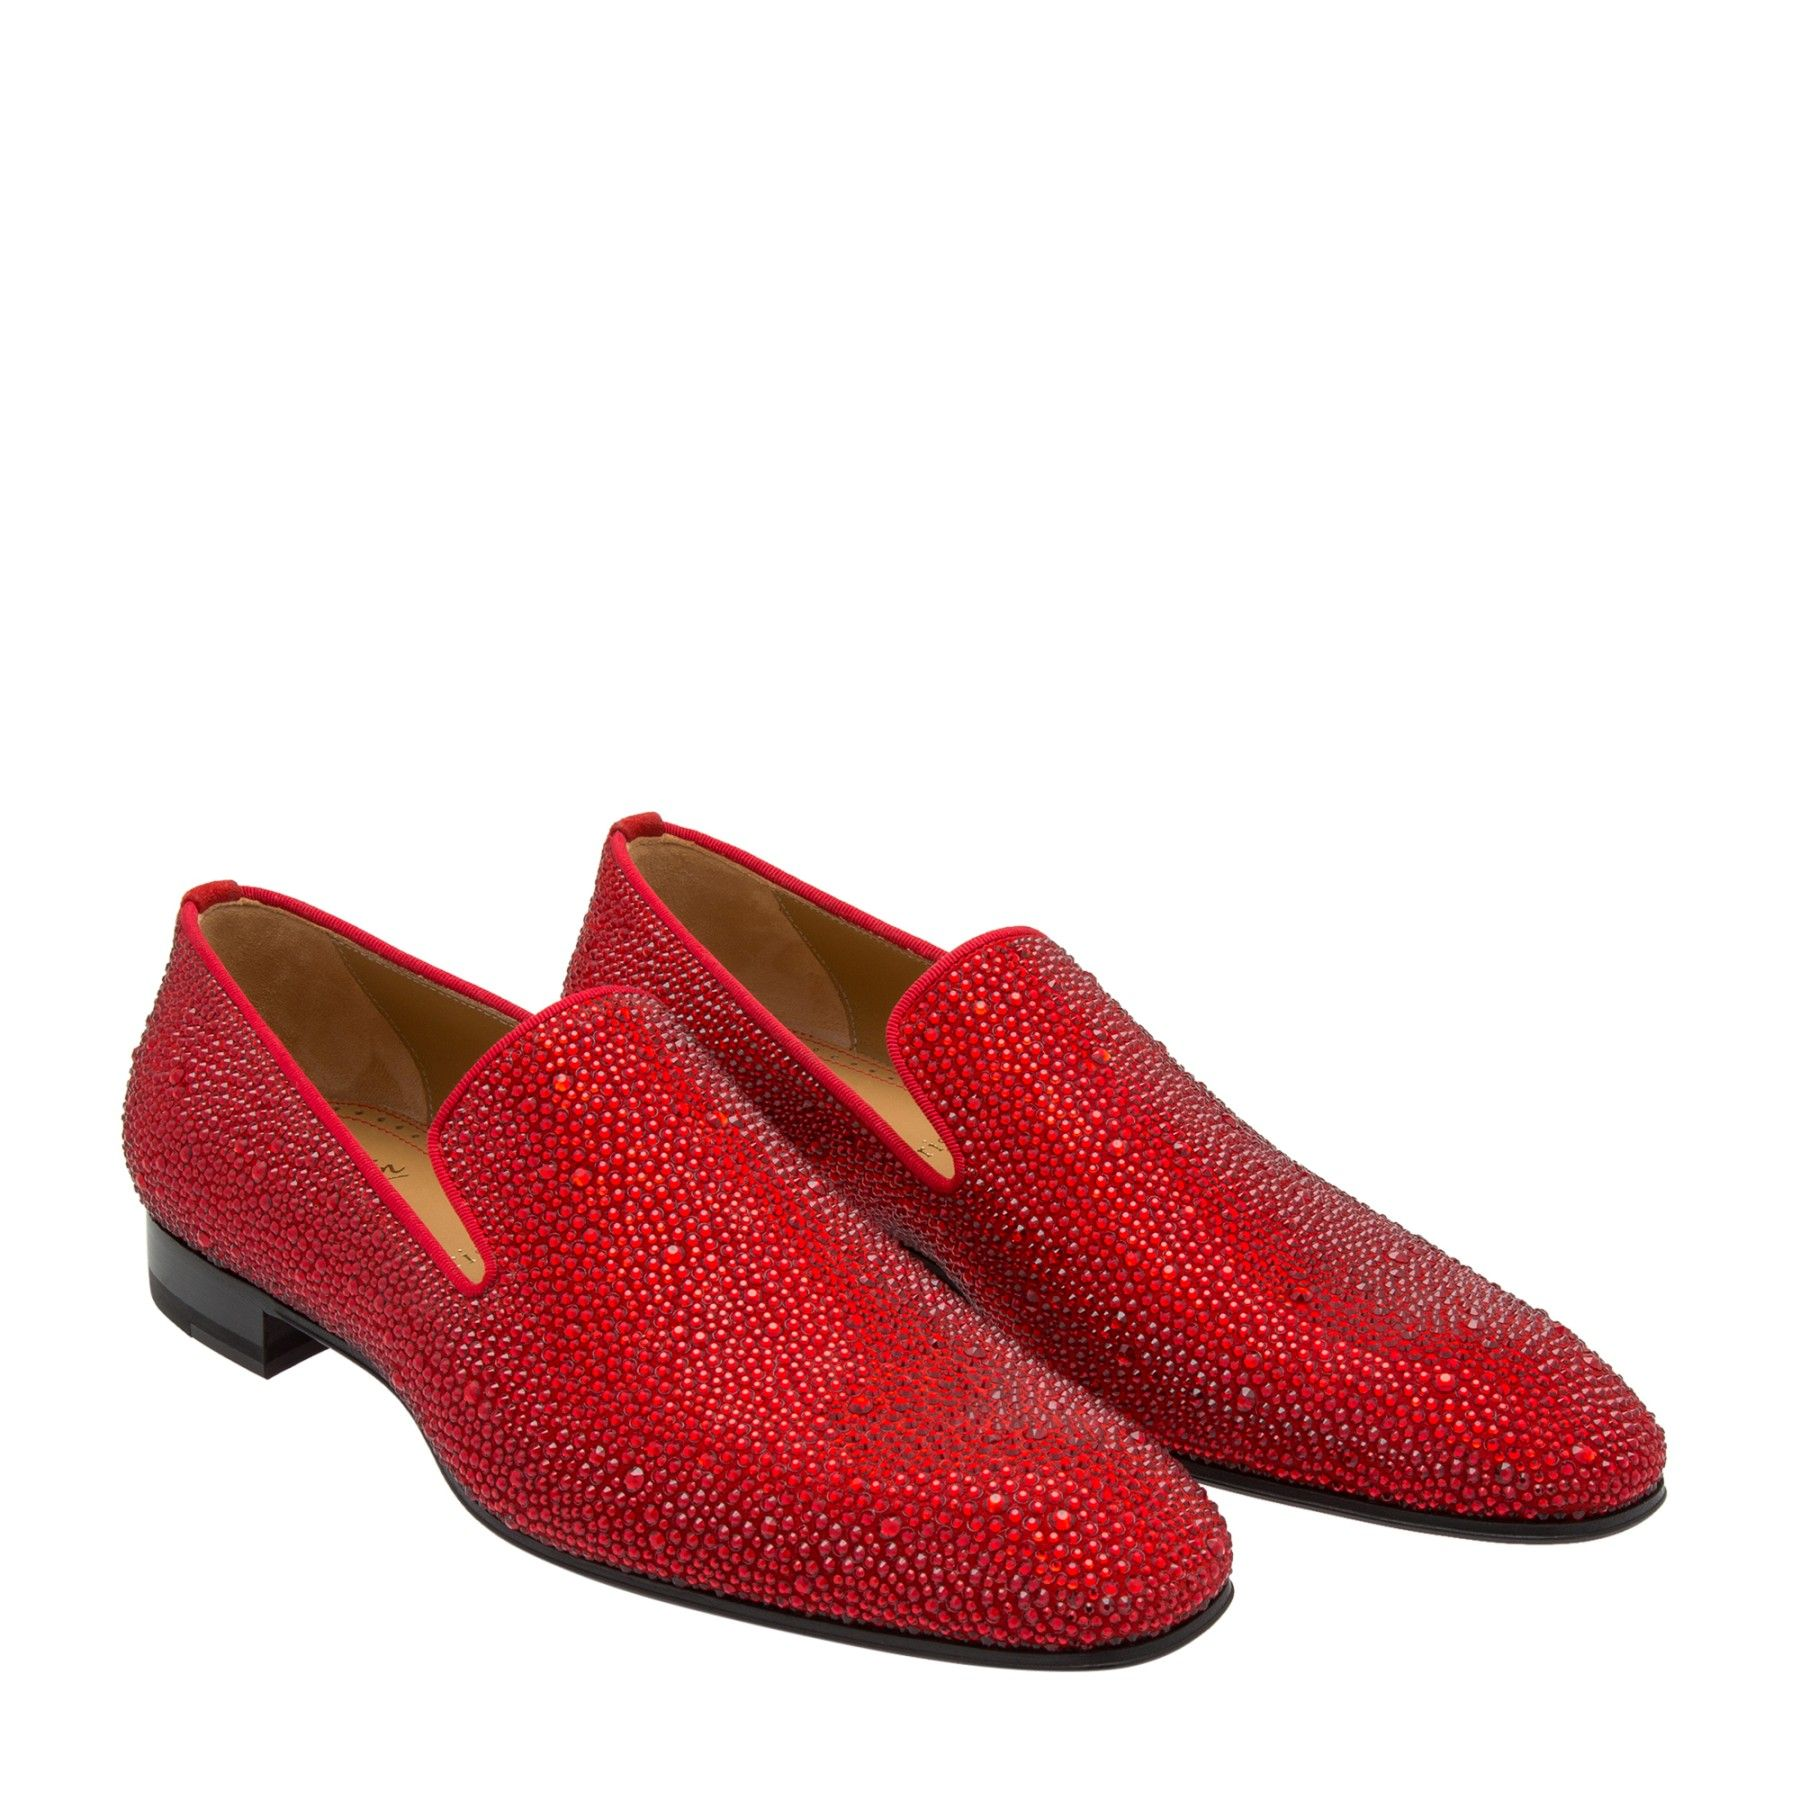 a7ba2b34b642 Christian Louboutin Red Dandelion Strass loafers for Men